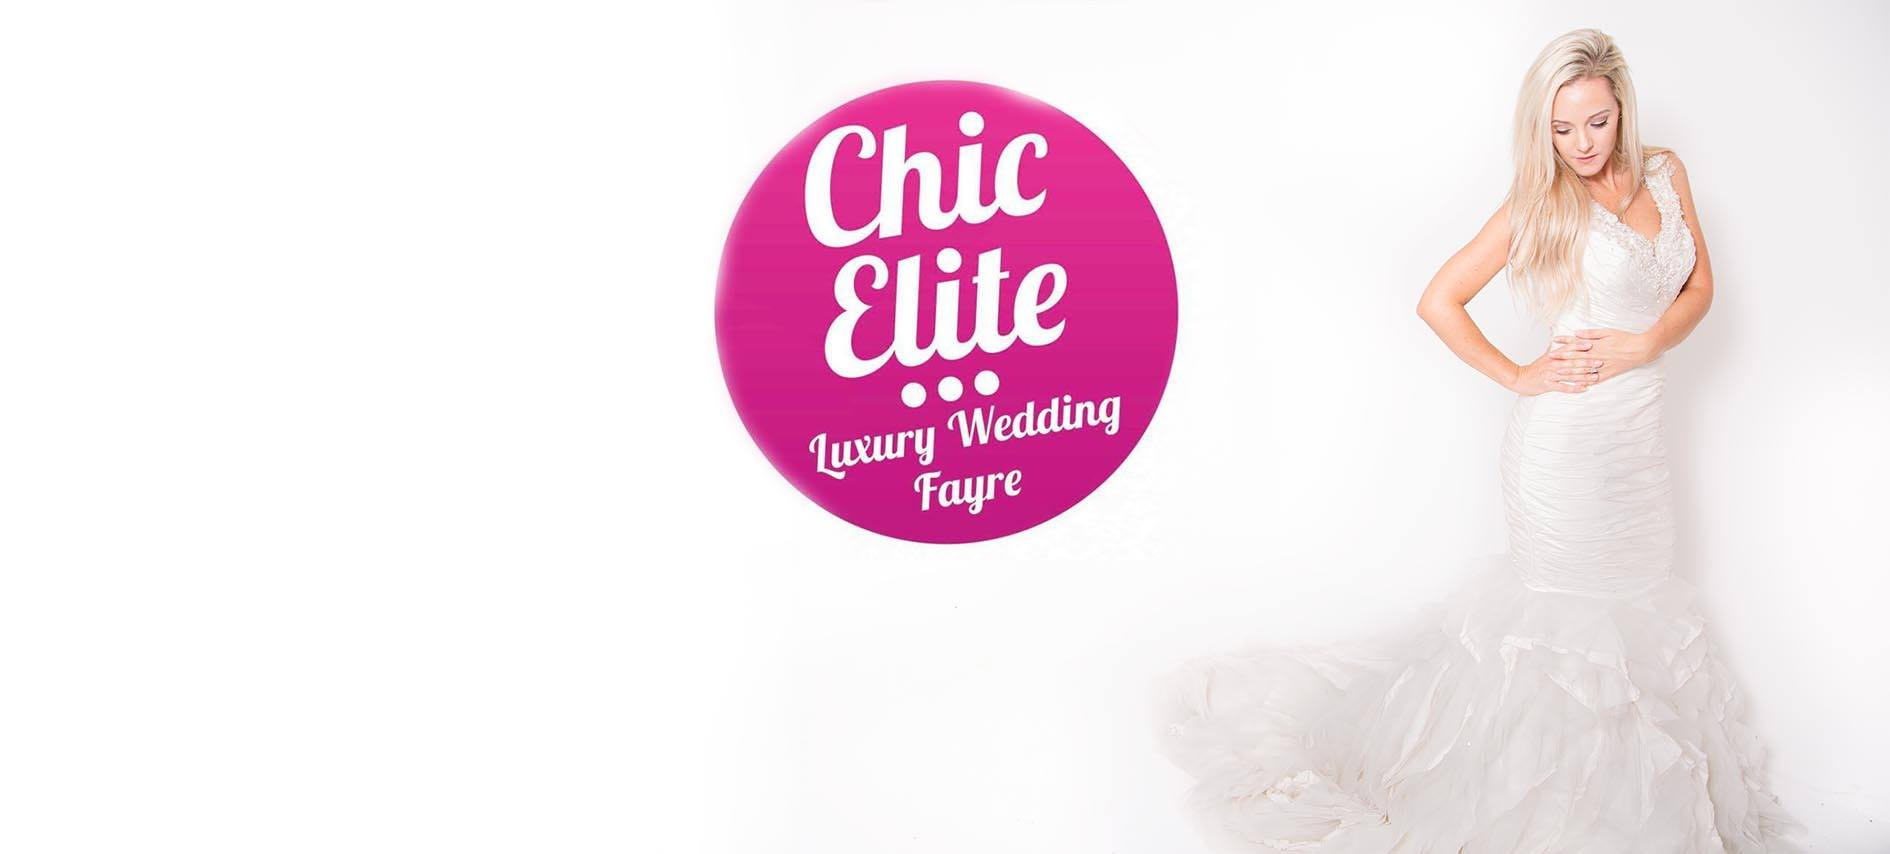 chic elite old trafford wedding fayre